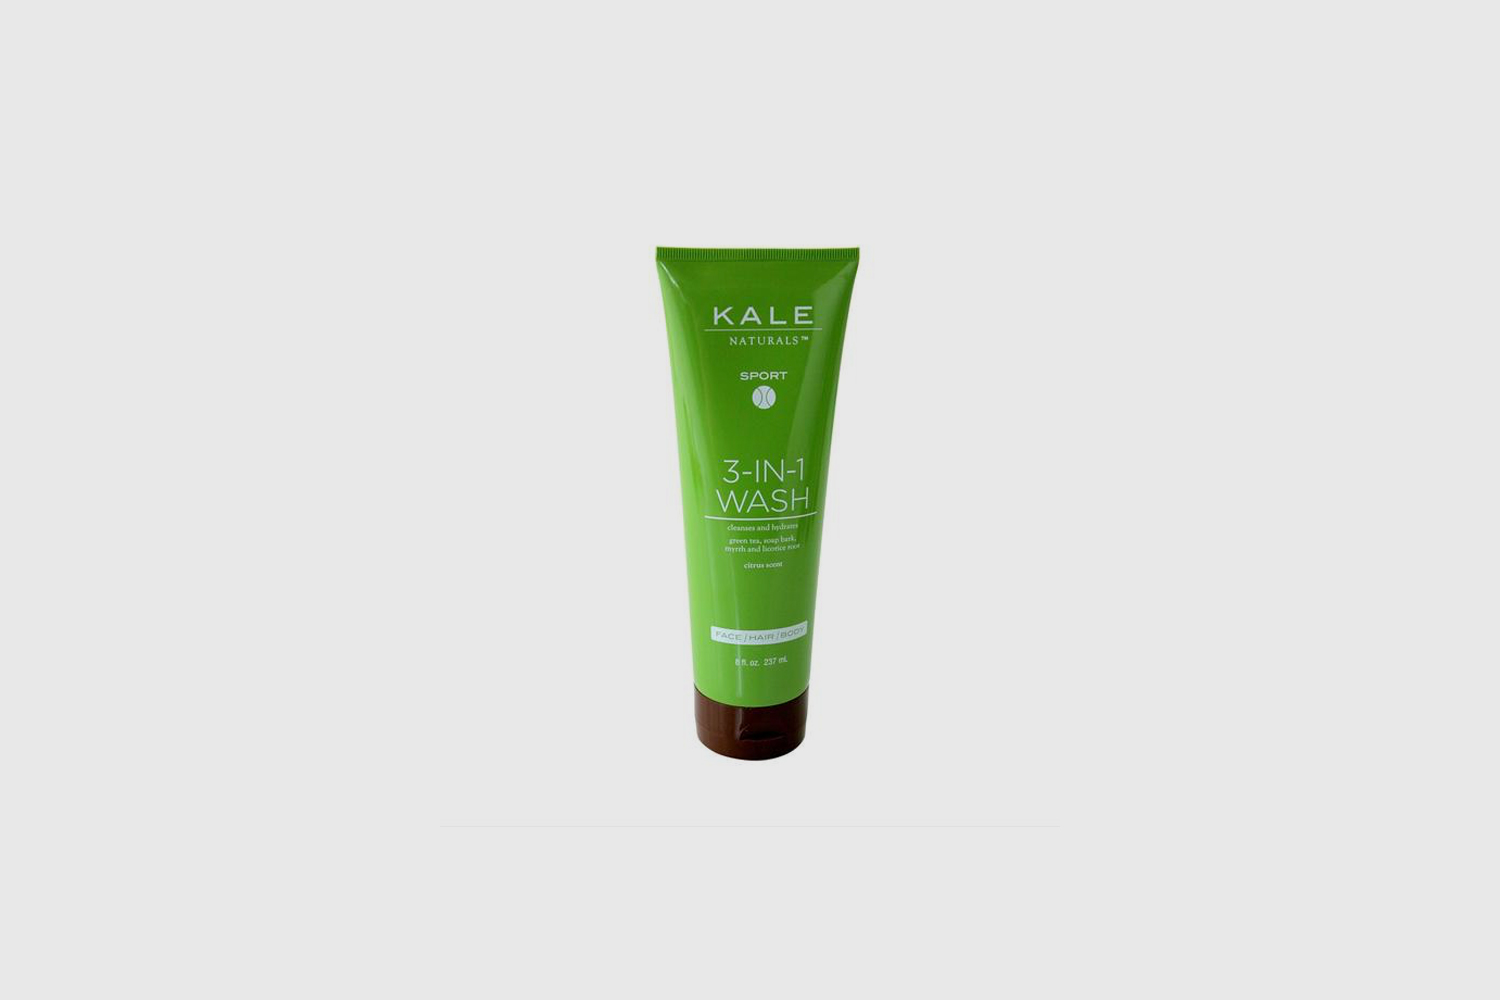 Kale Naturals 3-in-1 Body Wash Product Image